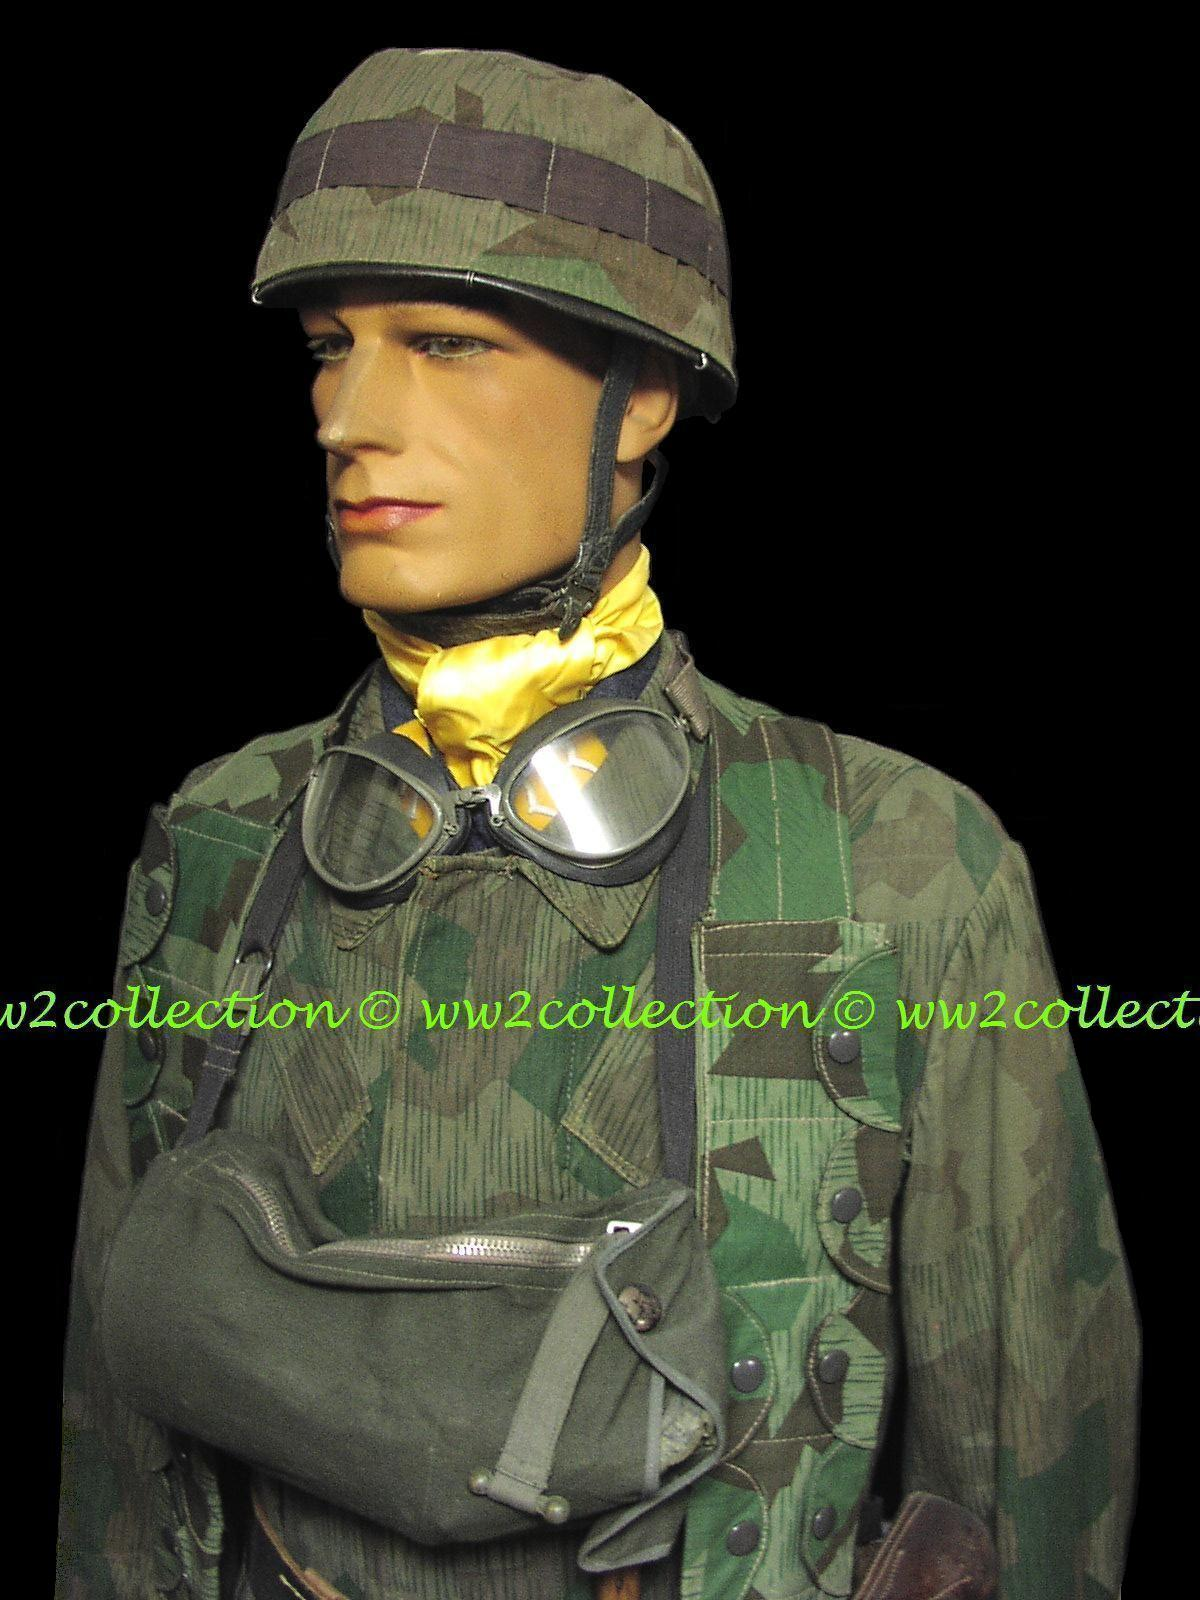 Camouflage uniform WW2 German FJR